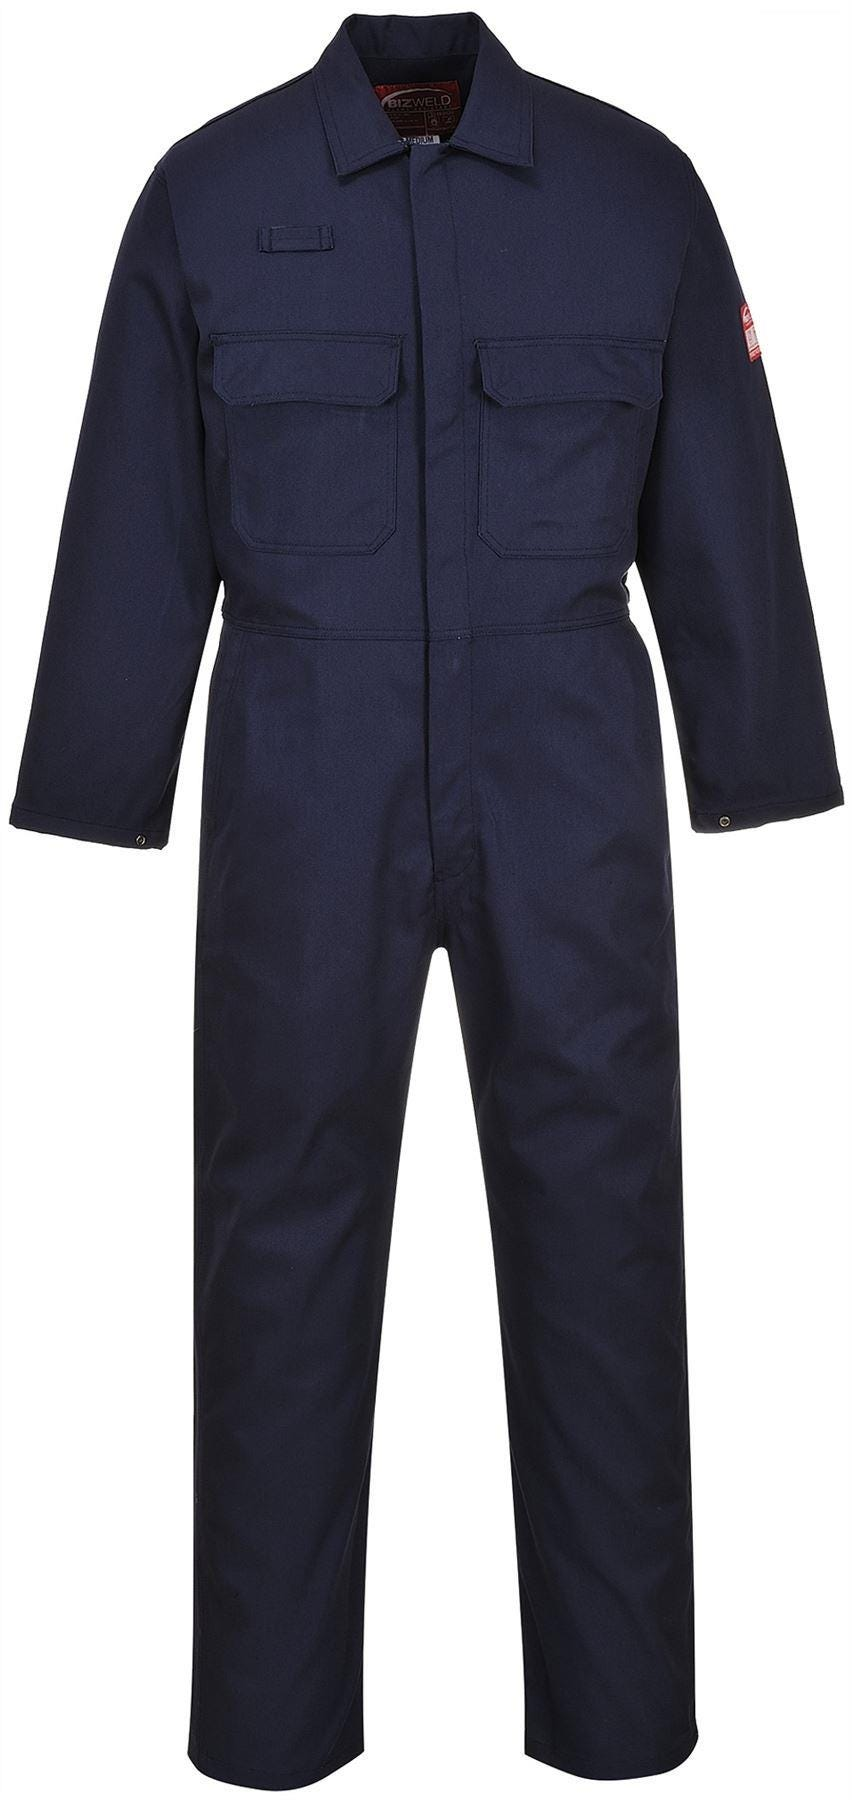 Portwest Bizweld Flame Resistant Coverall - Navy 3XL